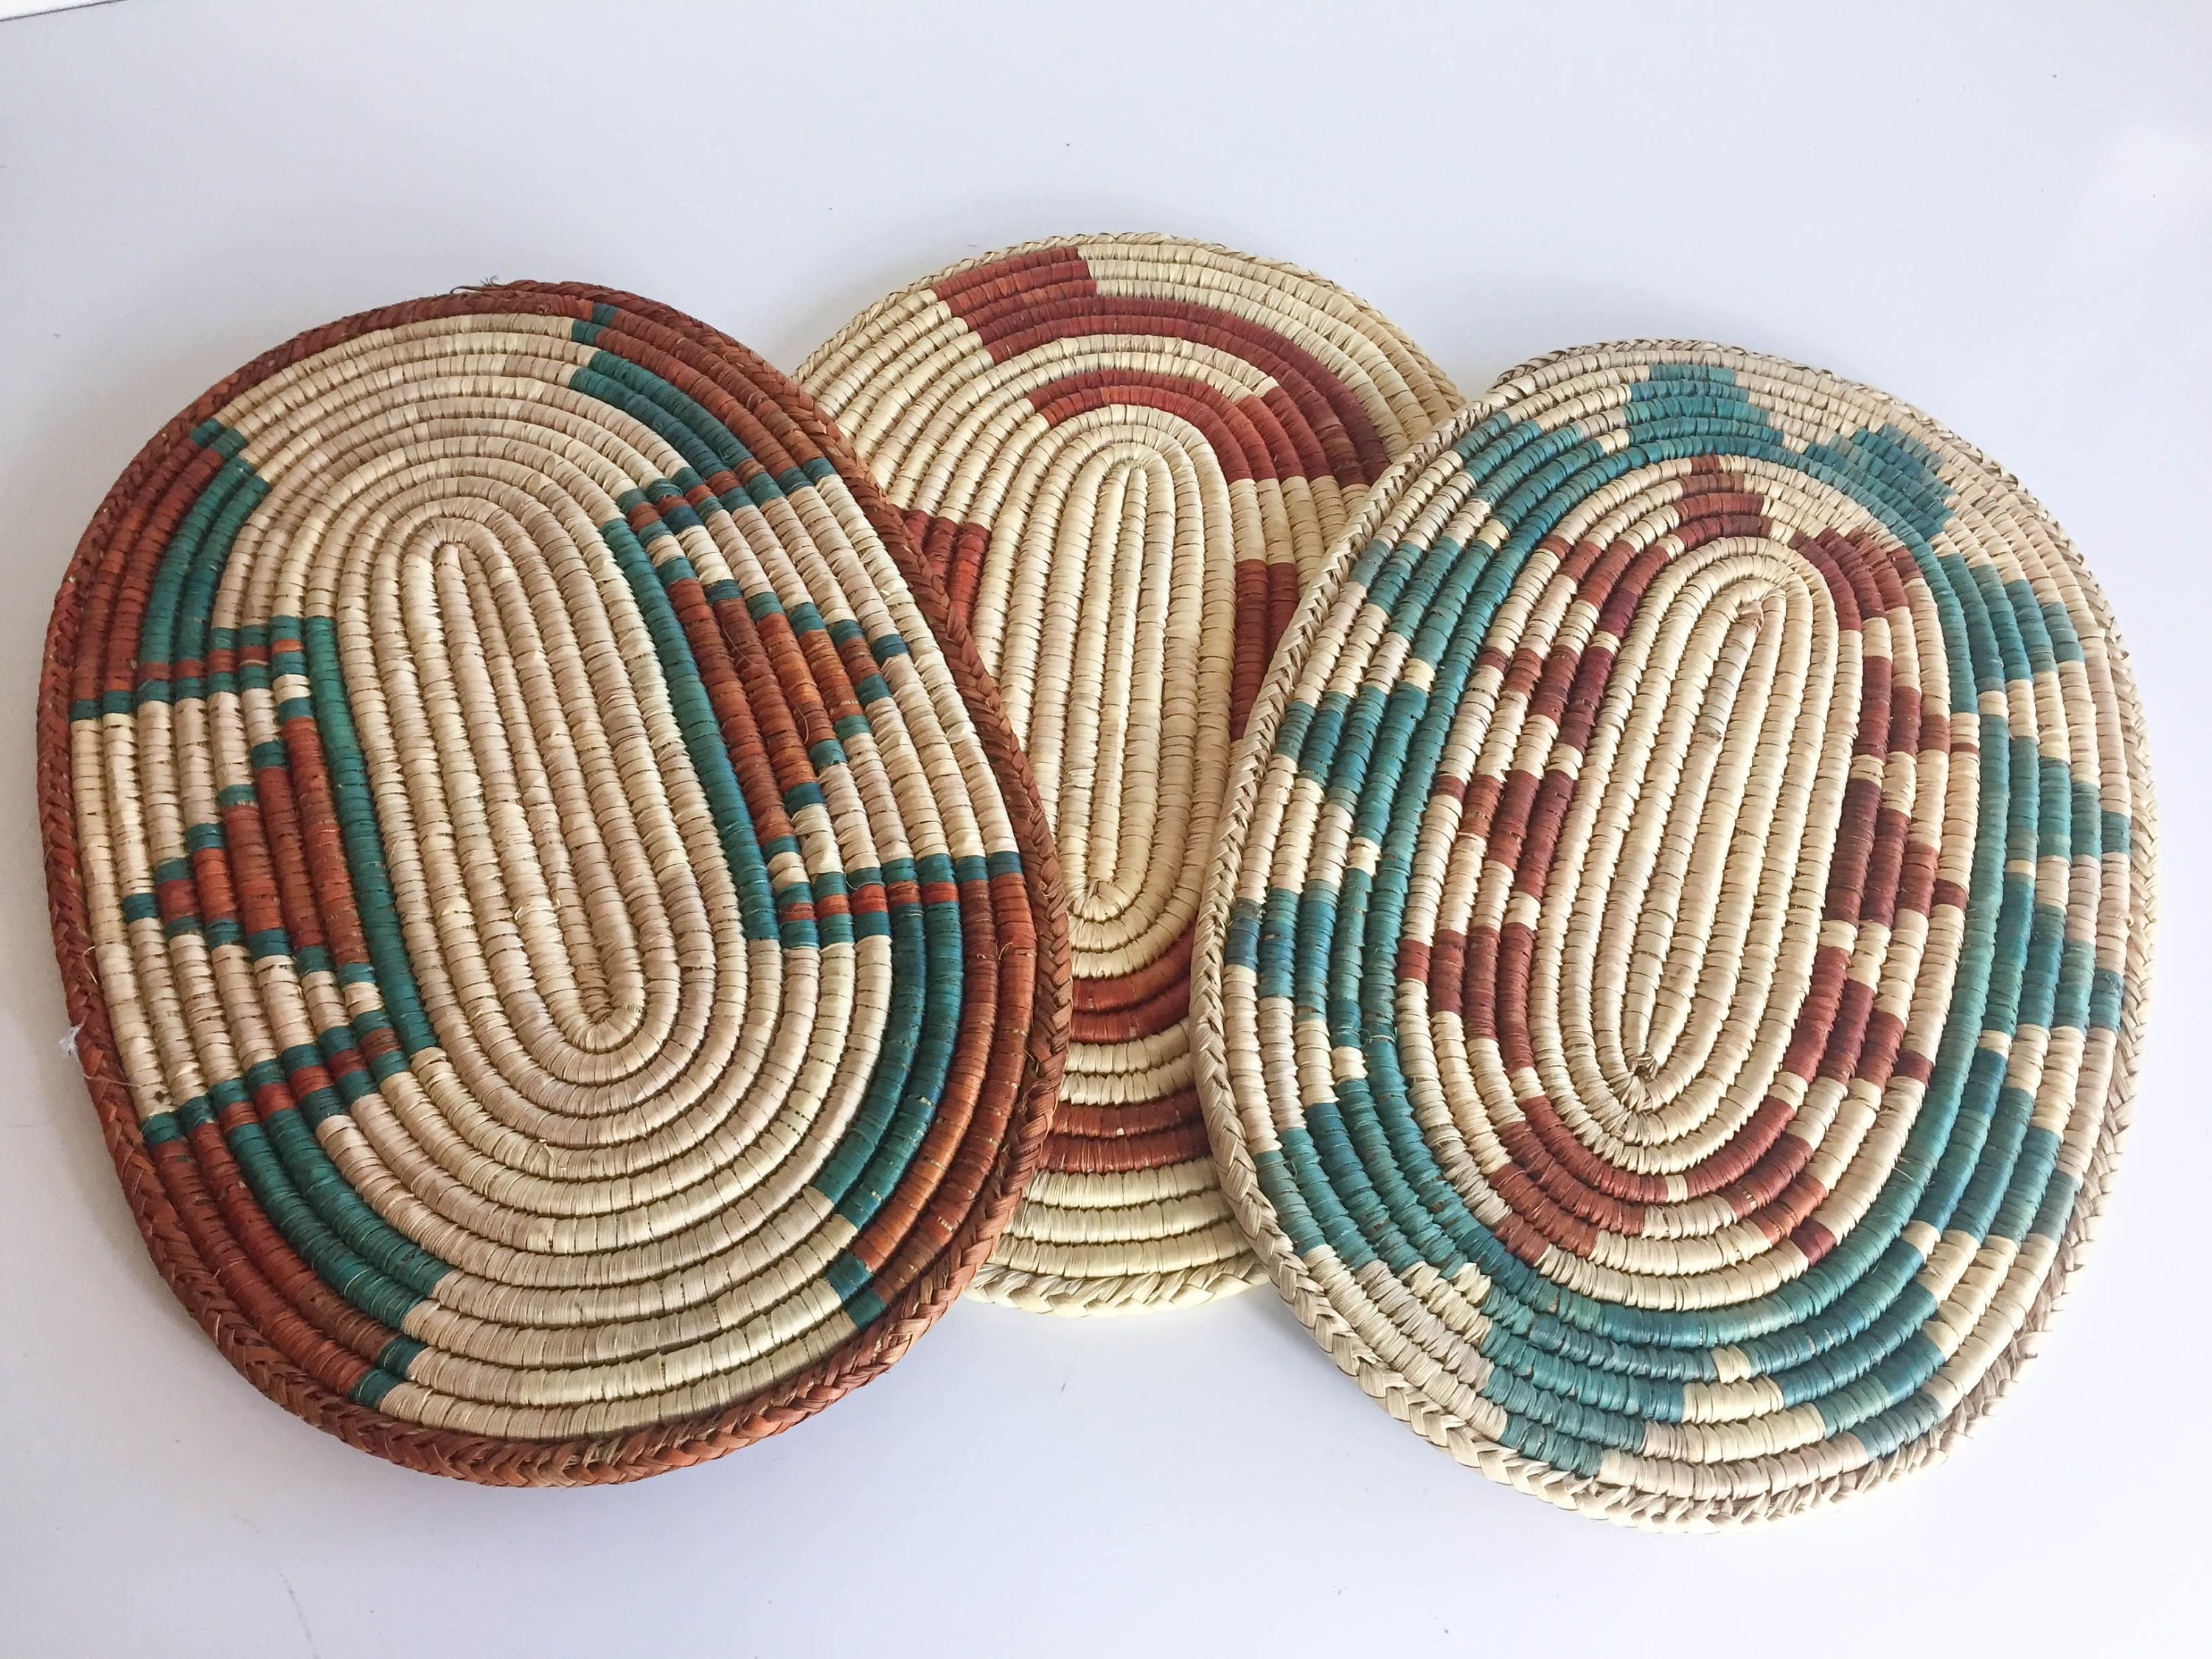 3 Southwestern Oval Coil Wall Hanging Plate Holder Baskets by JoplinDallasVintage on Etsy & 3 Southwestern Oval Coil Wall Hanging Plate Holder Baskets by ...